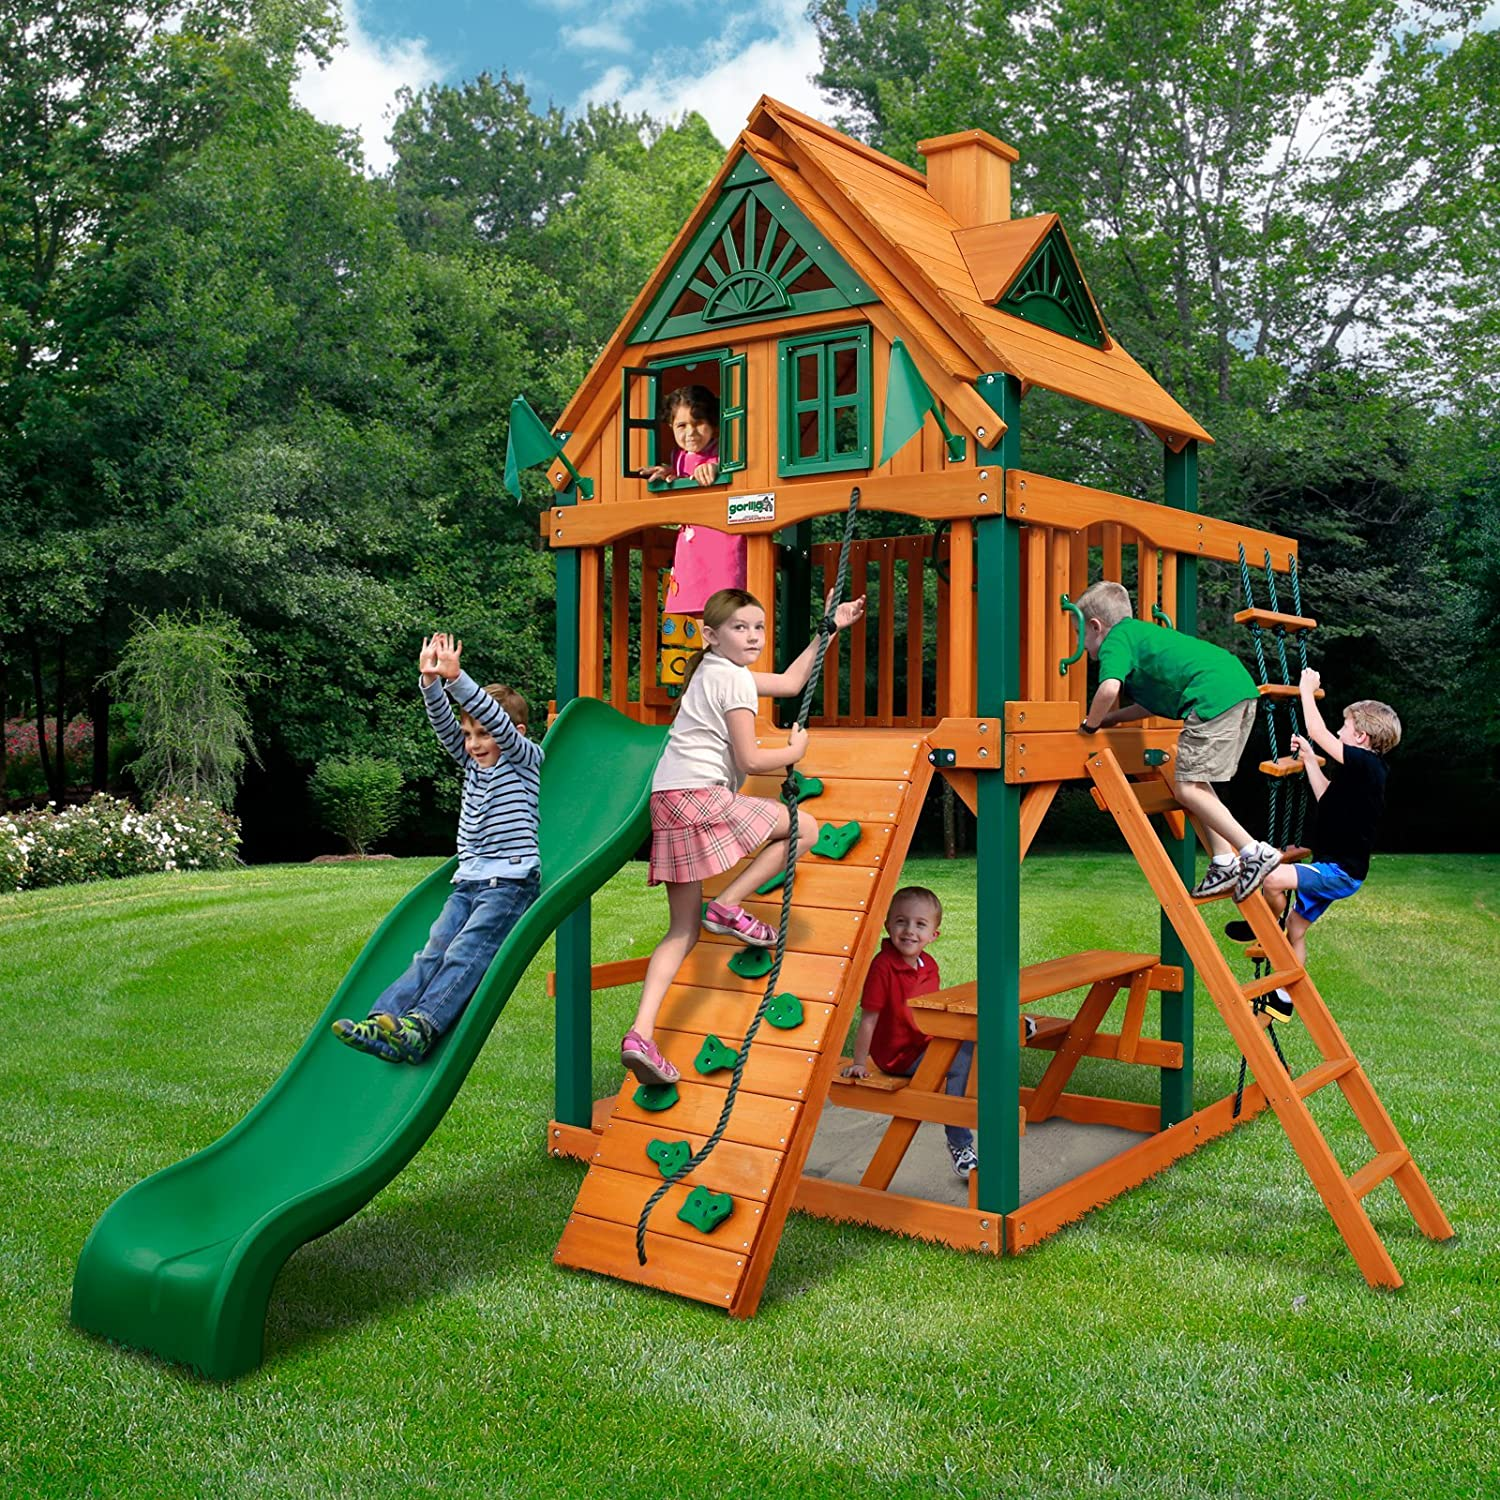 Amazoncom Chateau Treehouse Tower Swing Set With Timber Shield Toys